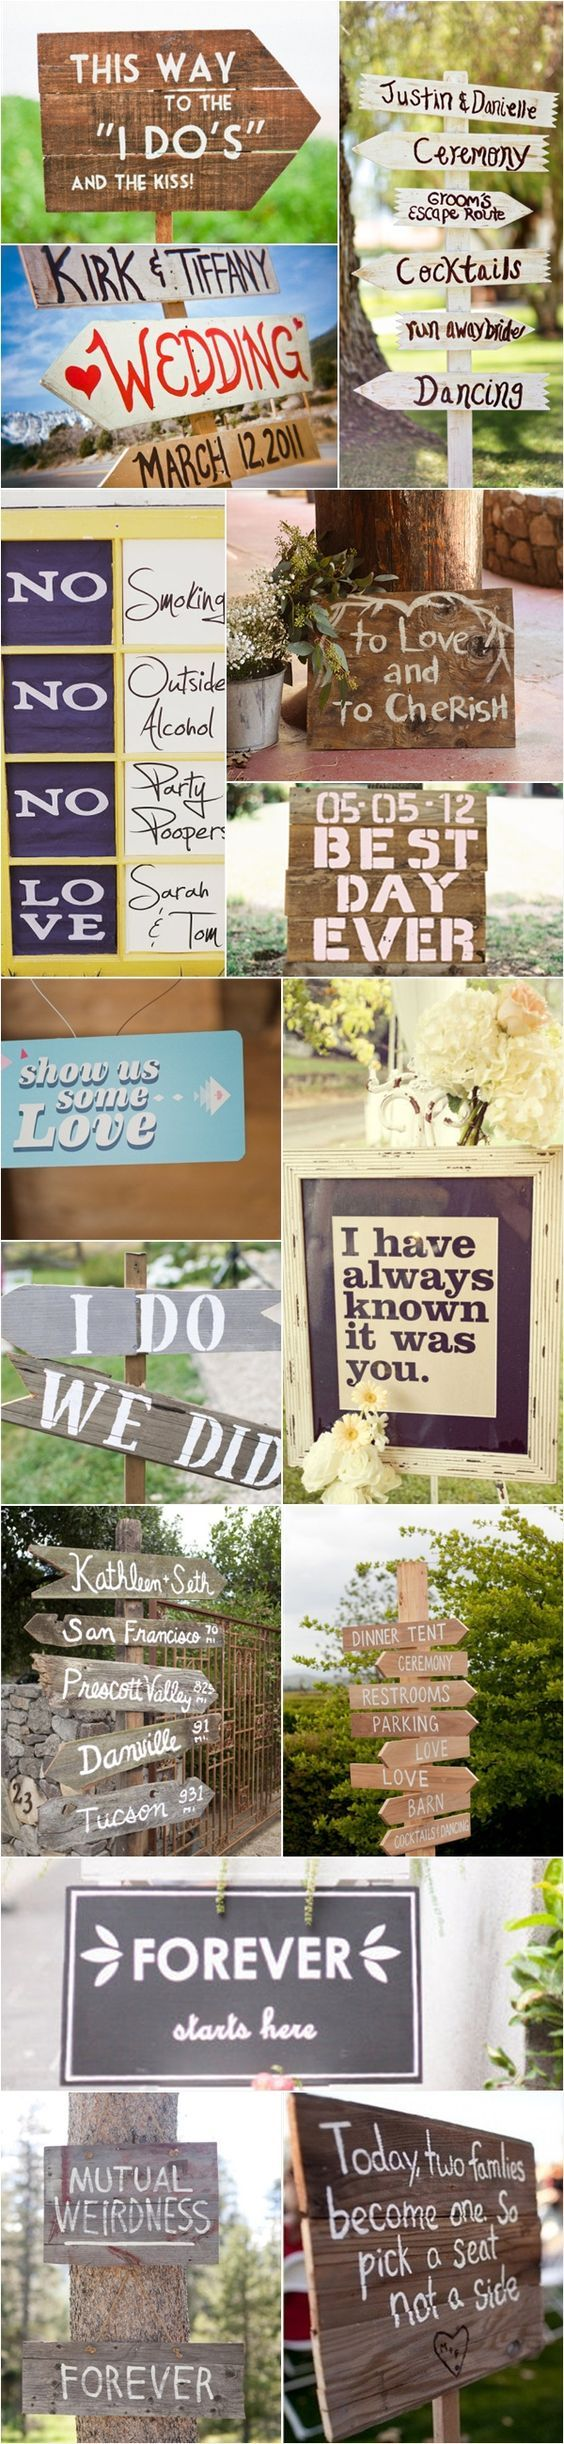 Wedding Signs - On the Road: